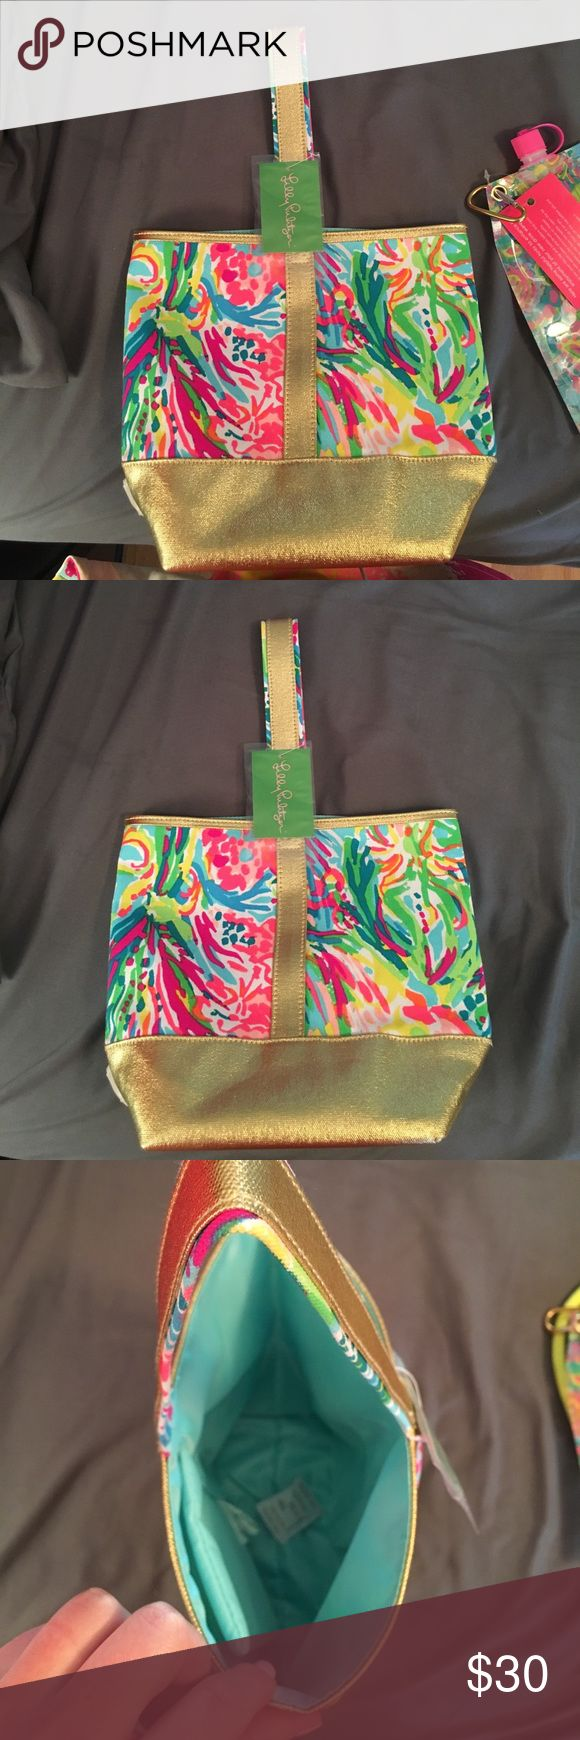 Lilly Pulitzer Wine Tote NWT Lilly Pulitzer wine Tote in multi fan sea pants print. Brand new with tags still attached! Great bag even if not used for wine Tote Lilly Pulitzer Accessories